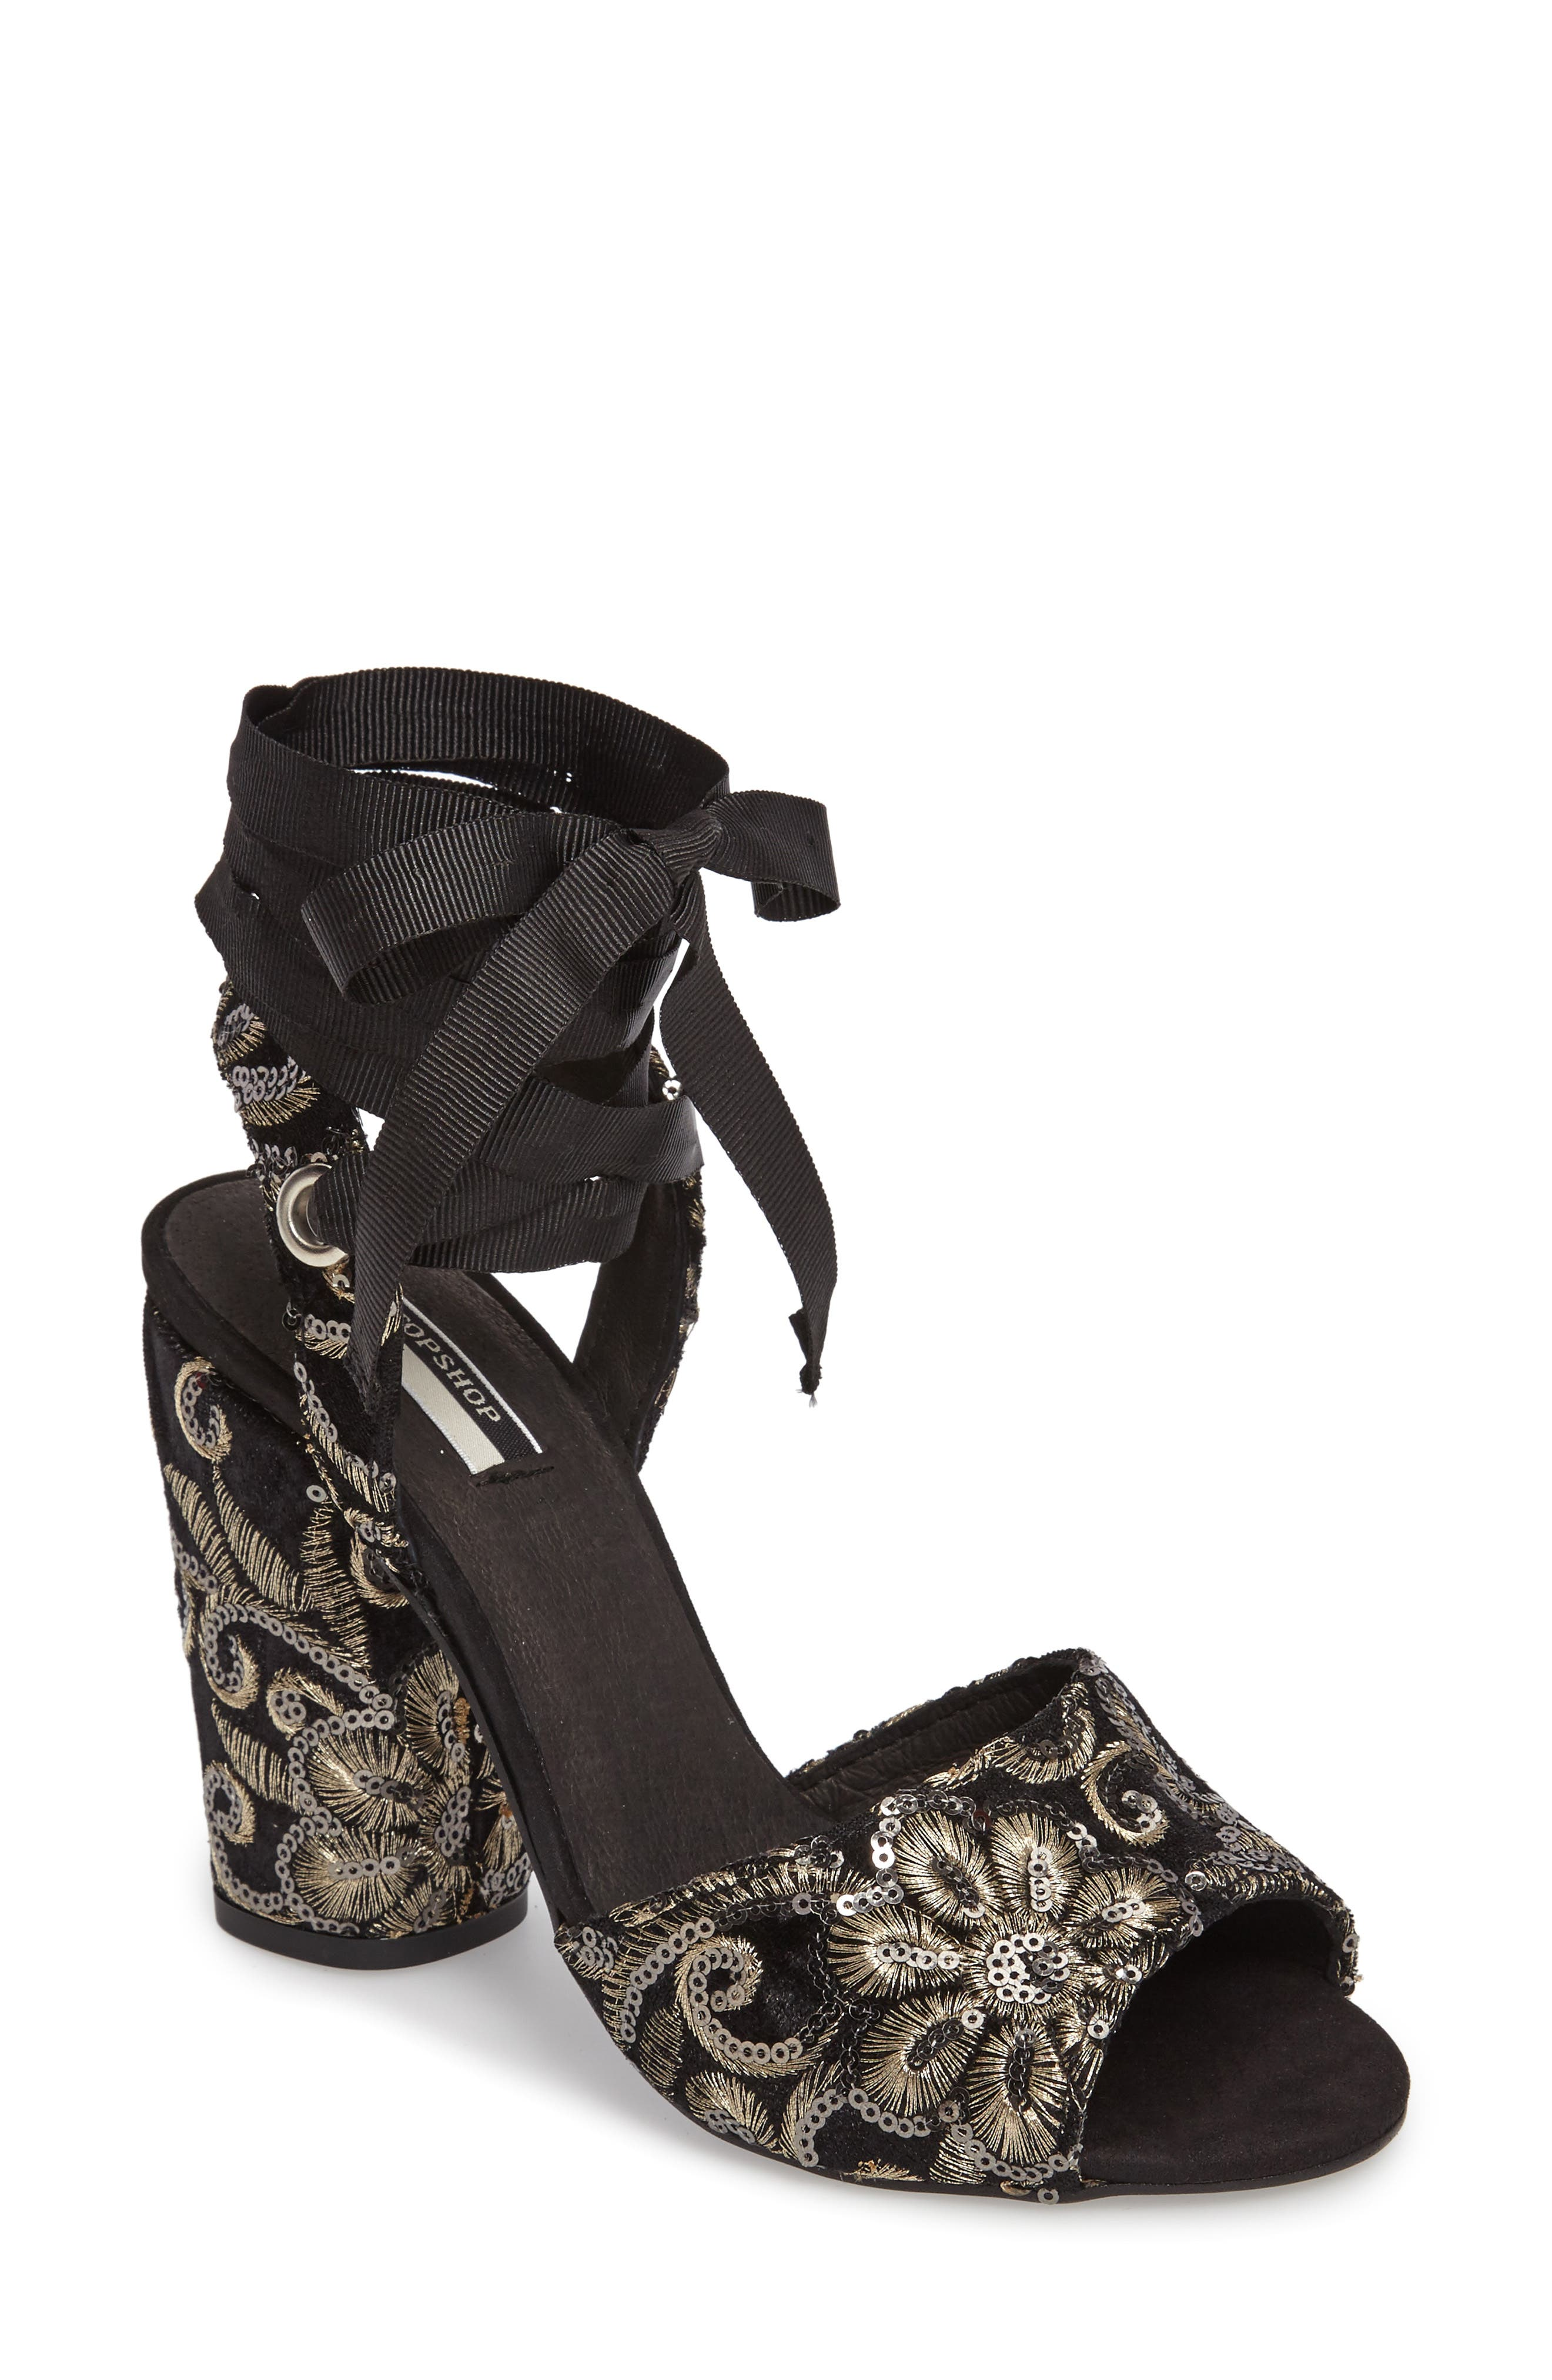 Alternate Image 1 Selected - Topshop Rioja Embroidered Lace-Up Sandals (Women)